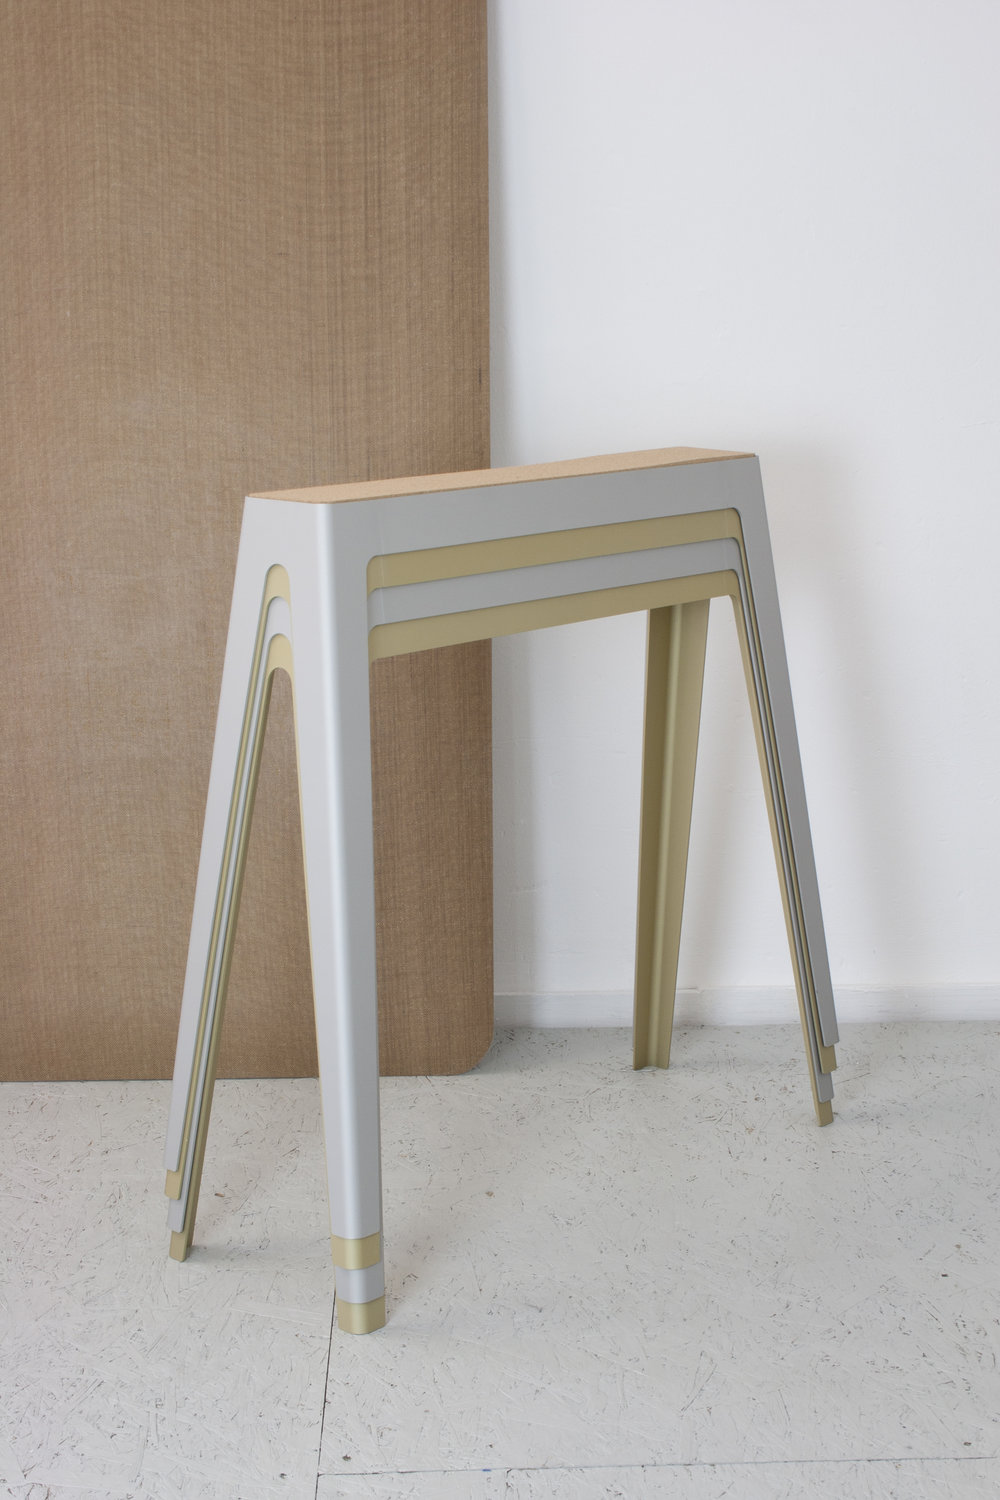 Lightness Table - trestles stacked - David Derksen Design.jpg